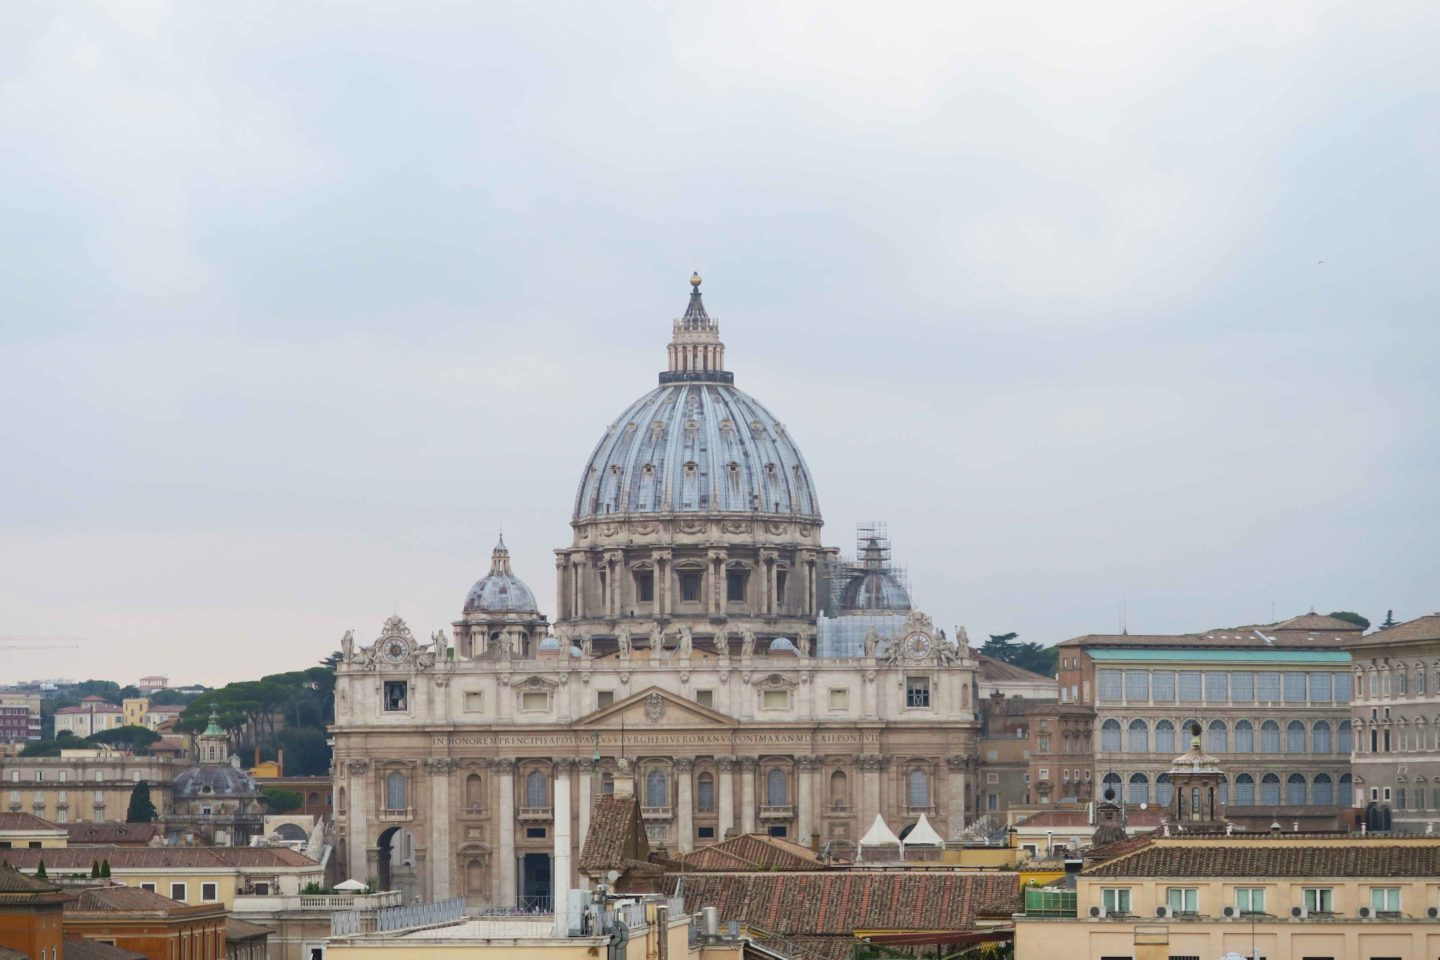 vatican from distance in rome